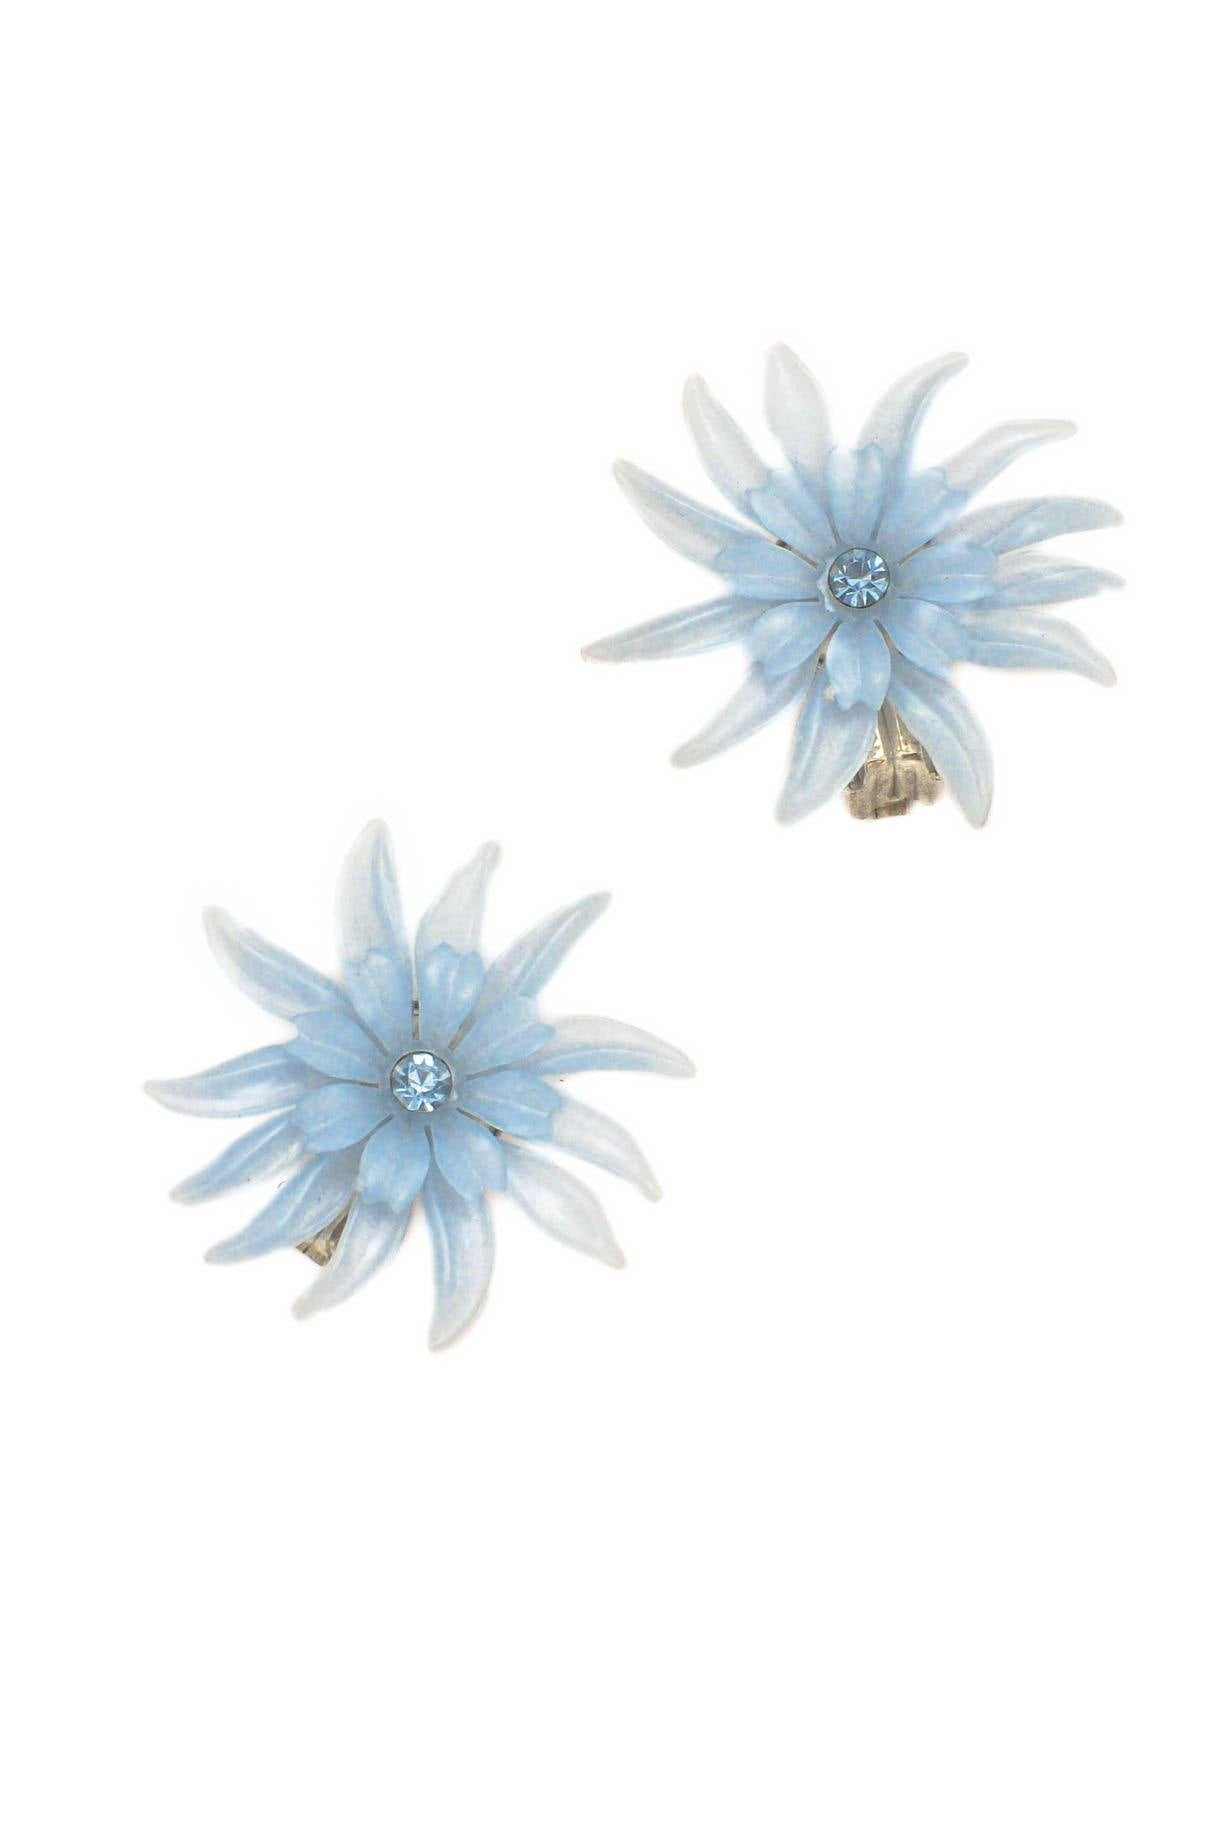 Vintage Blue Floral Clip-on Earrings from Sweet and Spark